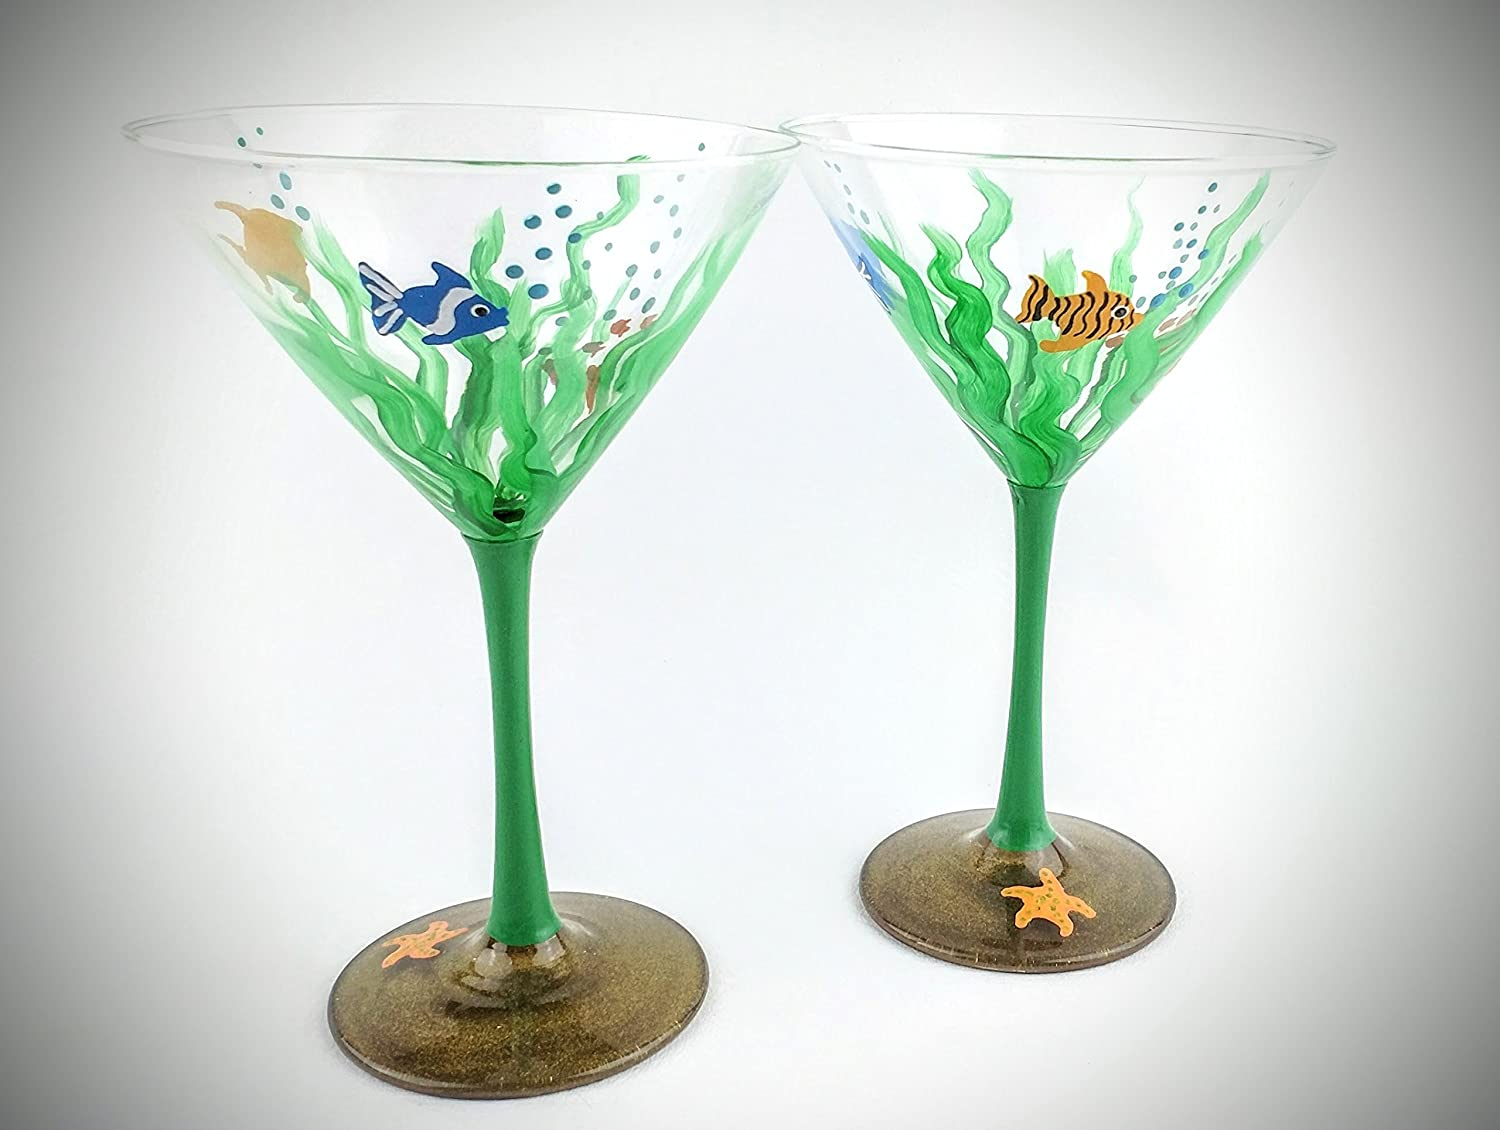 Ocean underwater themed Martini glasses, hand painted with seaweed, fish, sparkling sand - Set of two